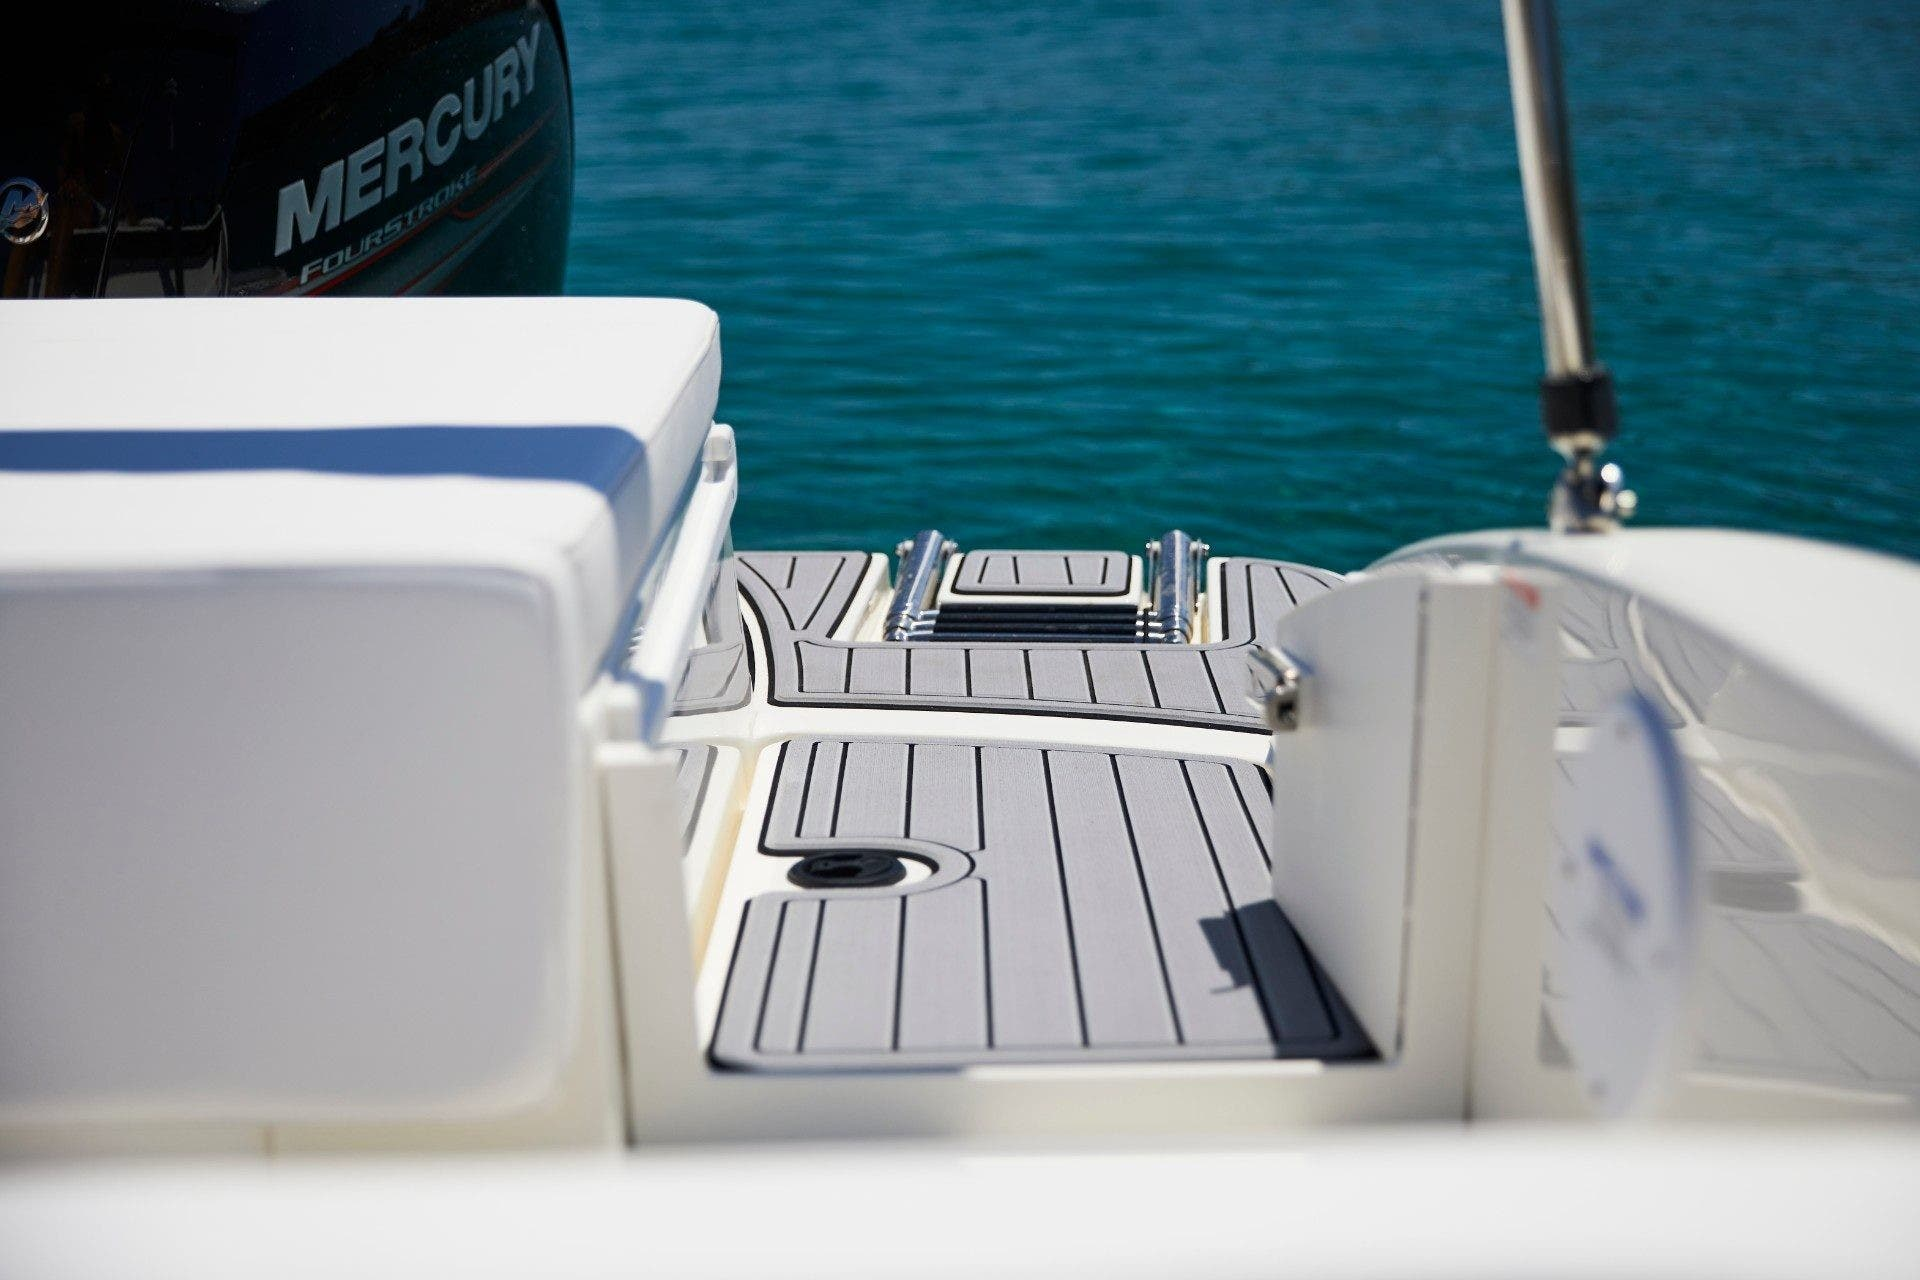 2022 Sea Ray boat for sale, model of the boat is 190spxo & Image # 5 of 5